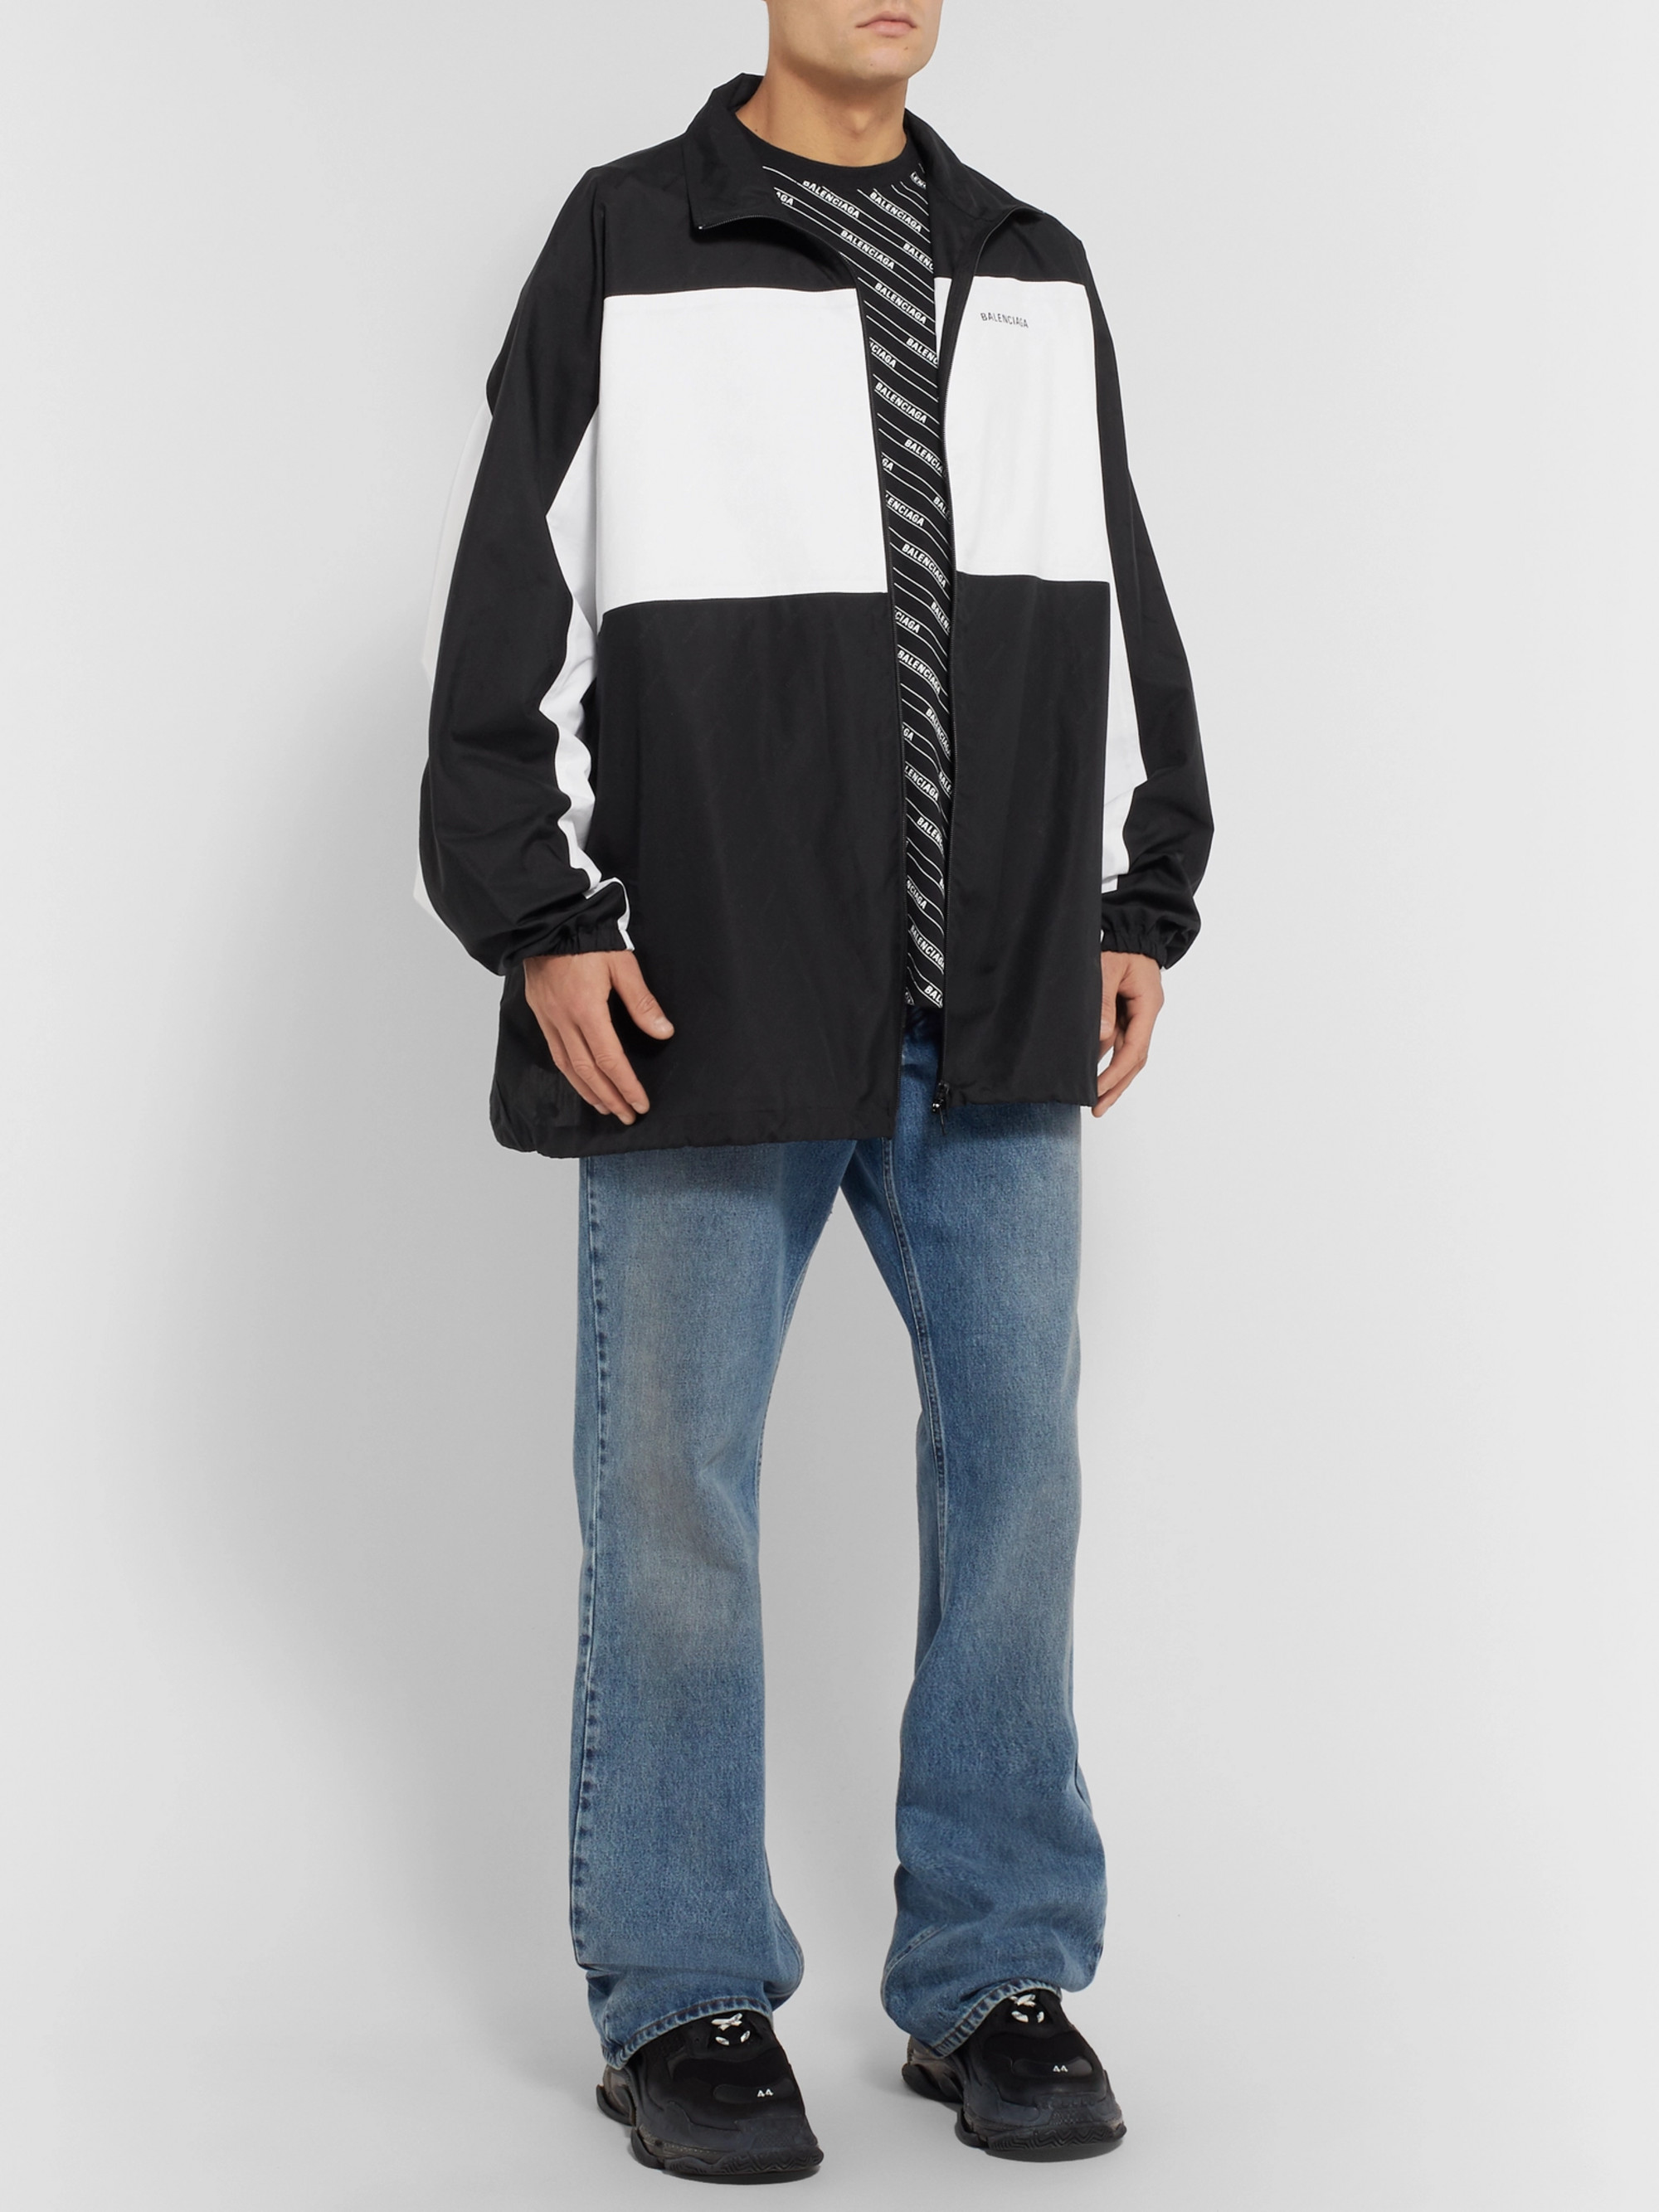 Balenciaga Oversized Logo Print Cotton Jacket